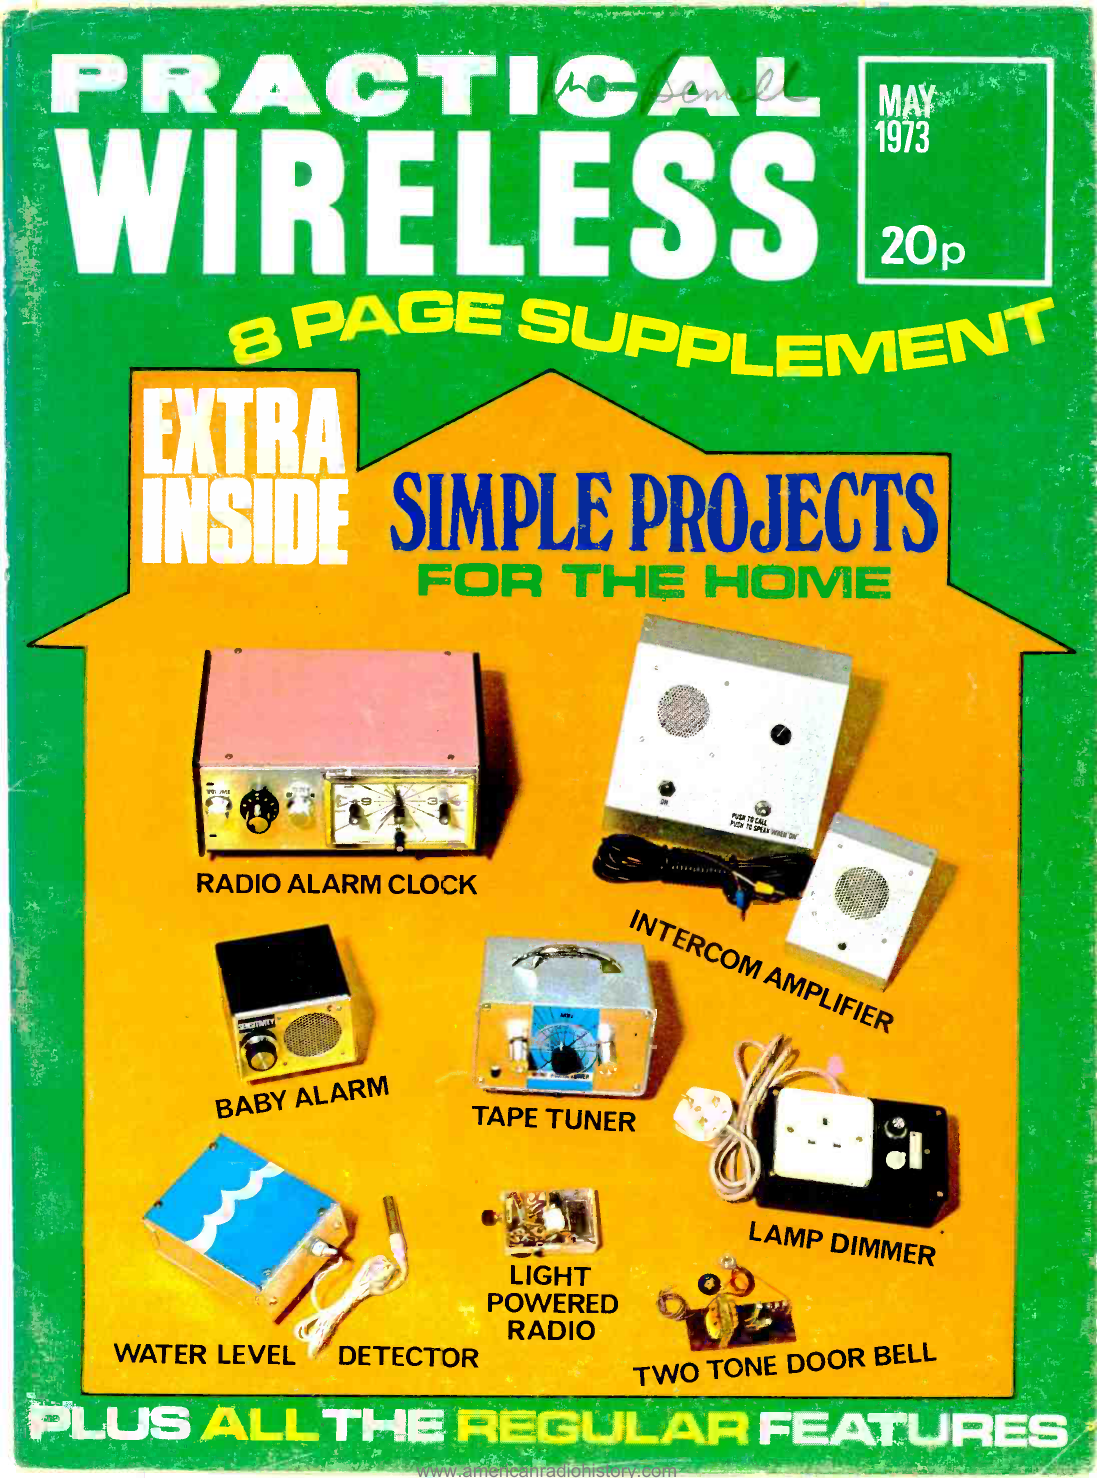 Enjoyable Simple Projects American Radio History Manualzz Com Wiring Cloud Overrenstrafr09Org